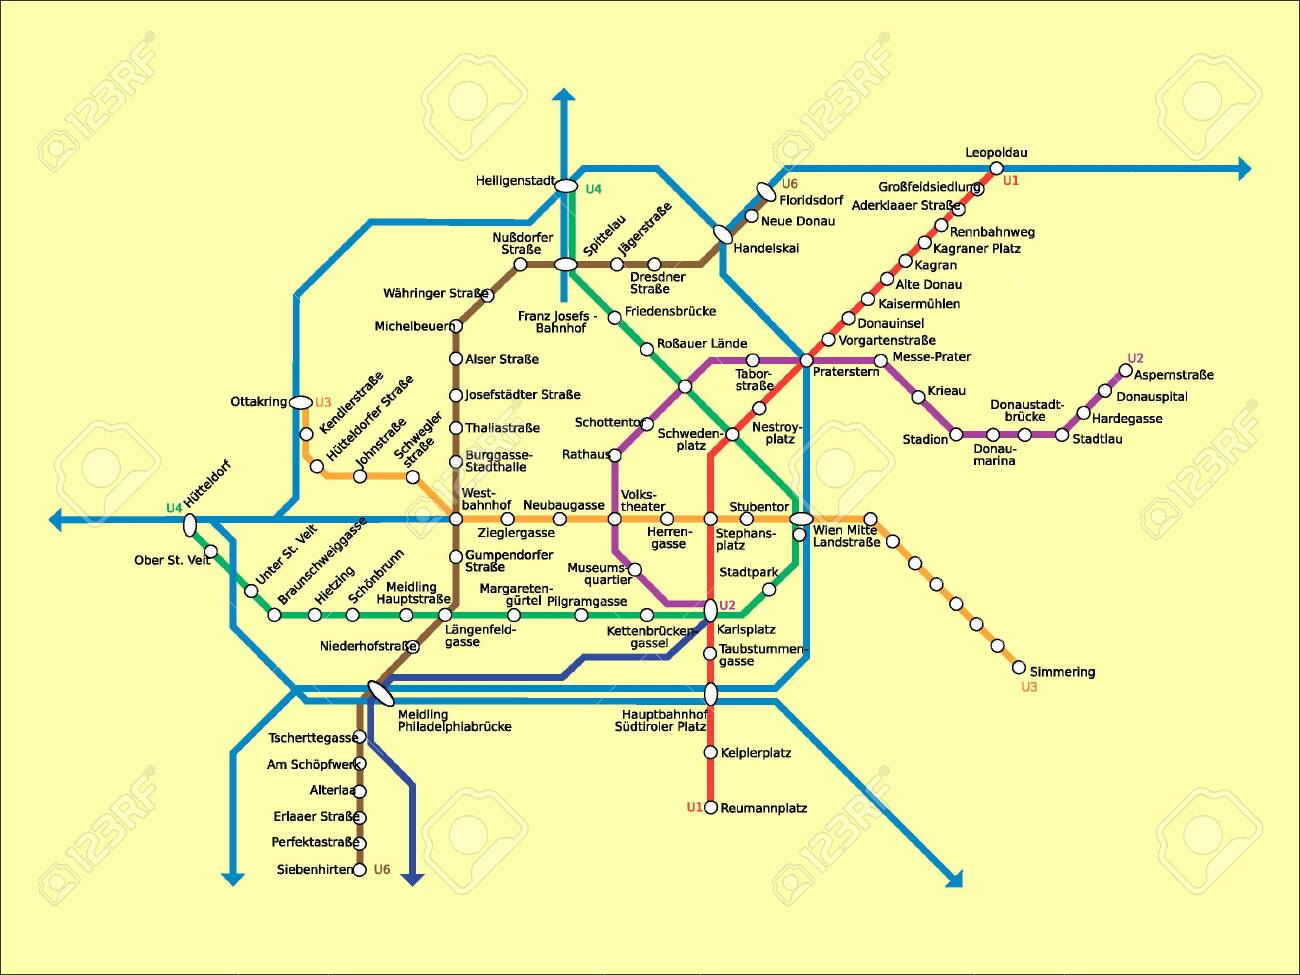 vienna detailed subway metro stations diagram map with labels royalty free  cliparts, vectors, and stock illustration. image 135458885.  123rf.com